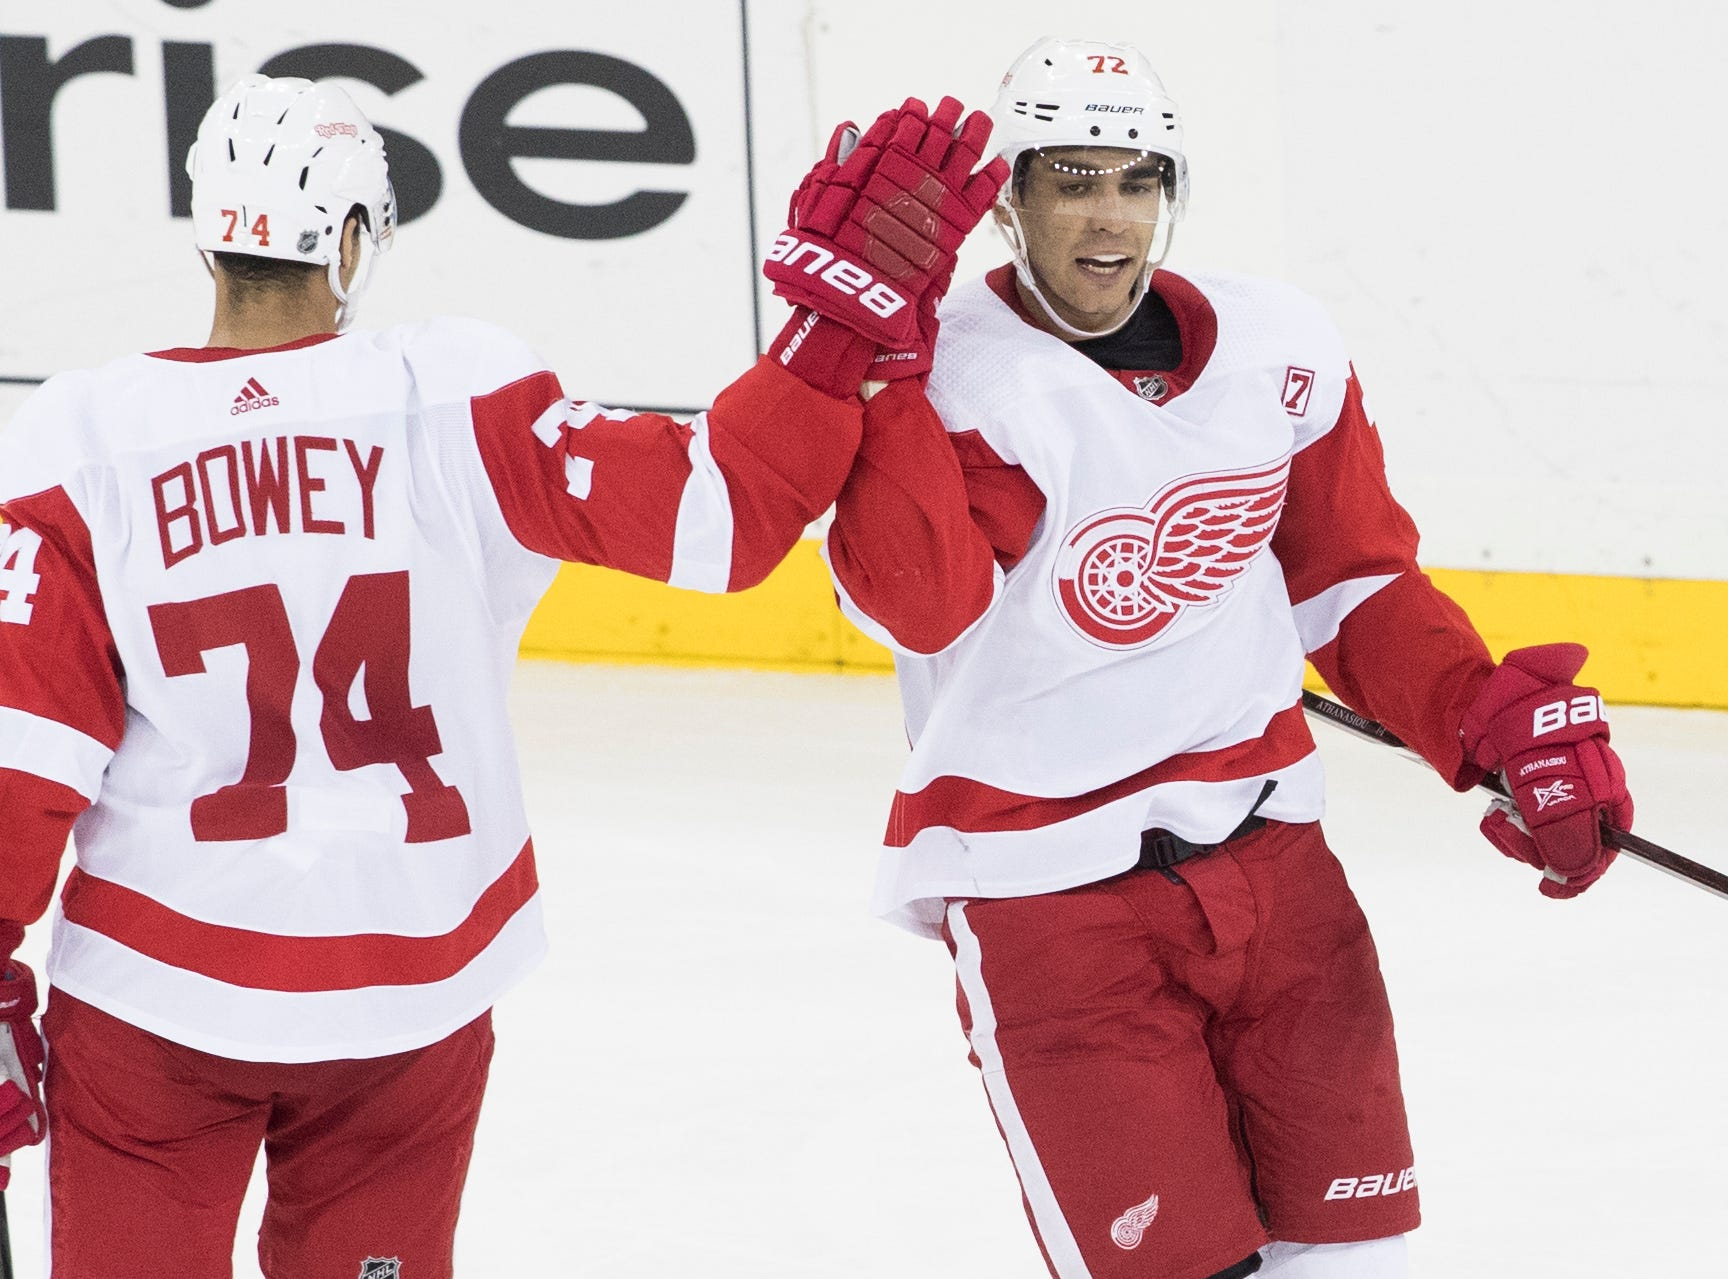 Detroit Red Wings center Andreas Athanasiou (72) celebrates after scoring the winning goal with defenseman Madison Bowey (74) during the third period of an NHL hockey game against the New York Rangers, Tuesday, March 19, 2019, at Madison Square Garden in New York. The Red Wings won 3-2.